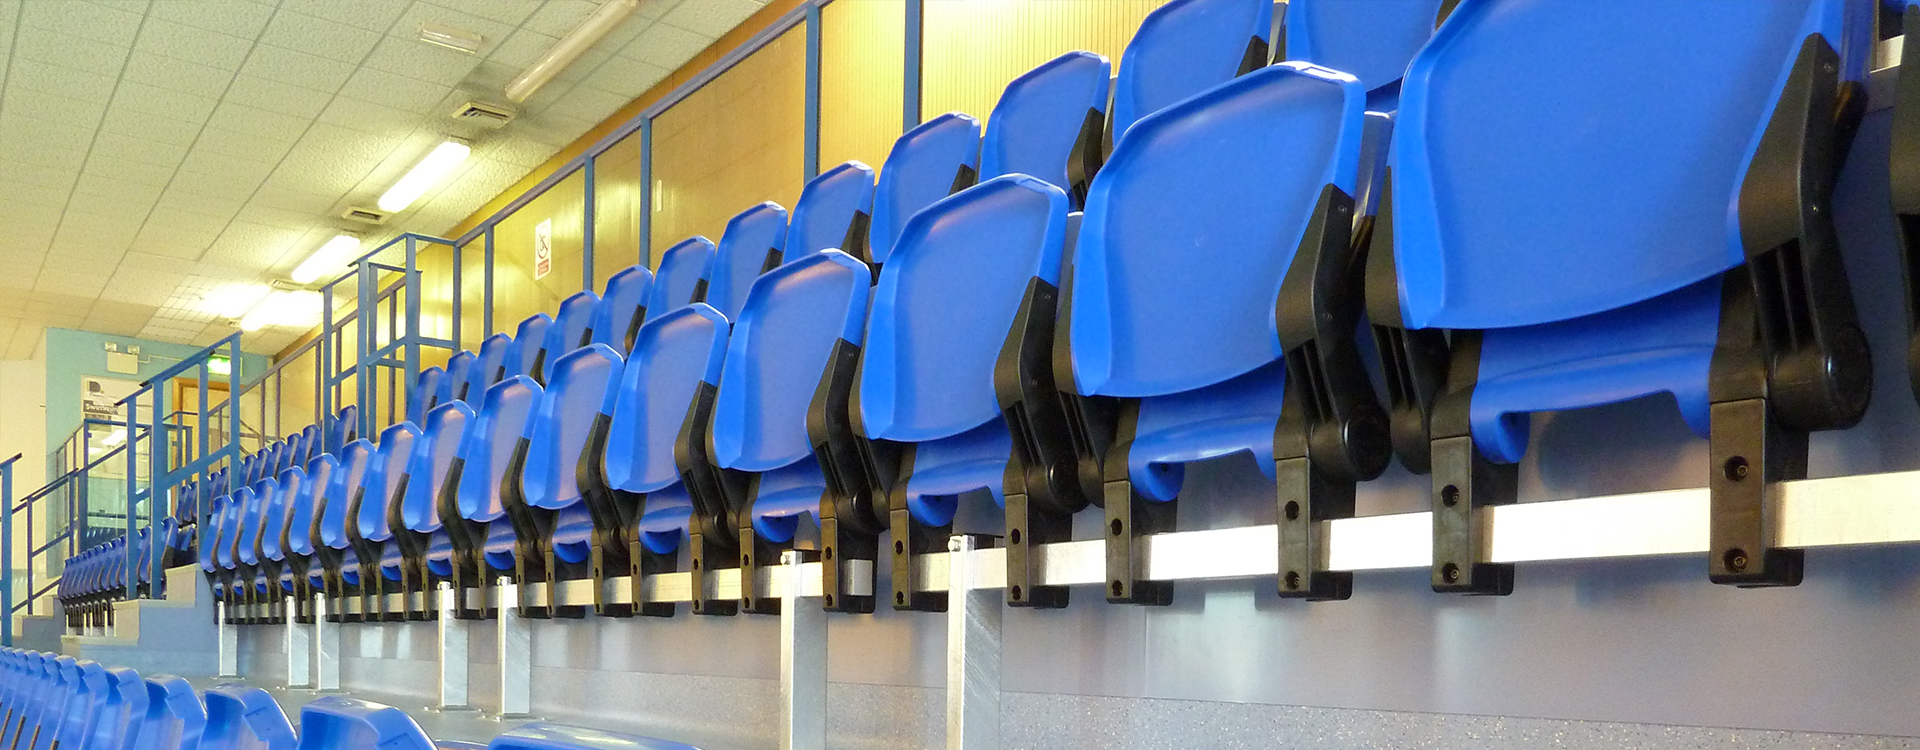 Newton Aycliffe Leisure Centre Spectator Seating